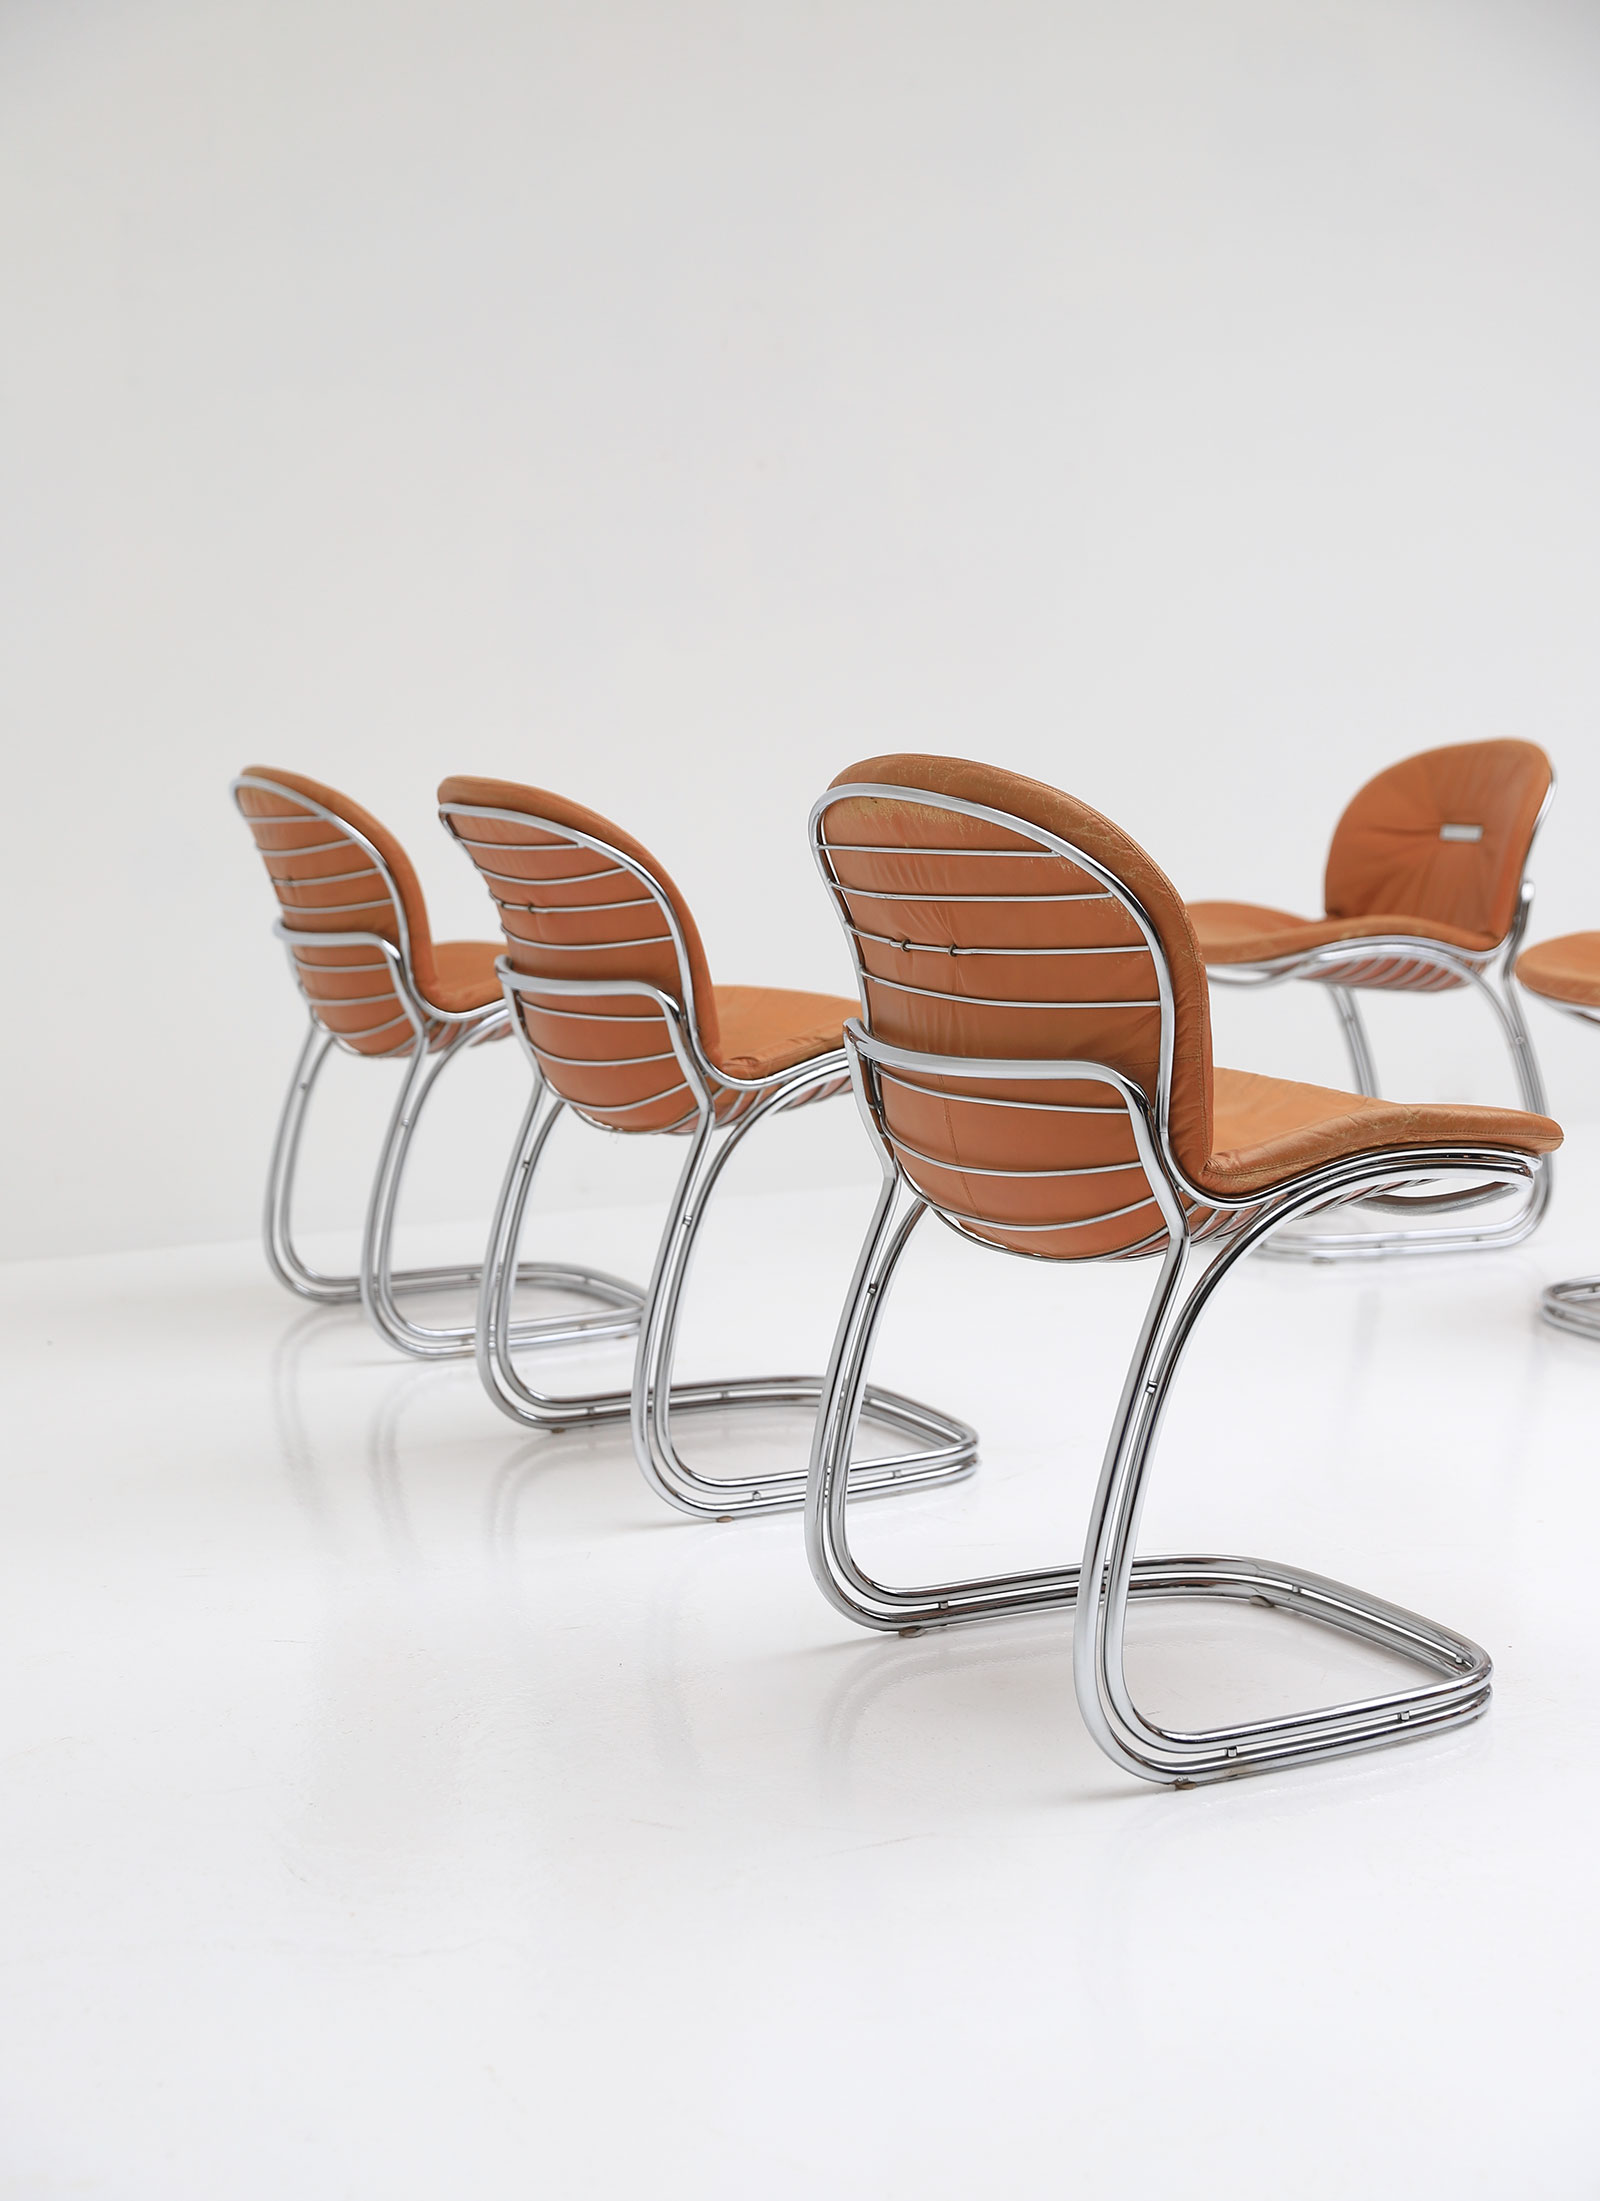 Gastone Rinaldi Sabrina Cantilevered Chairs